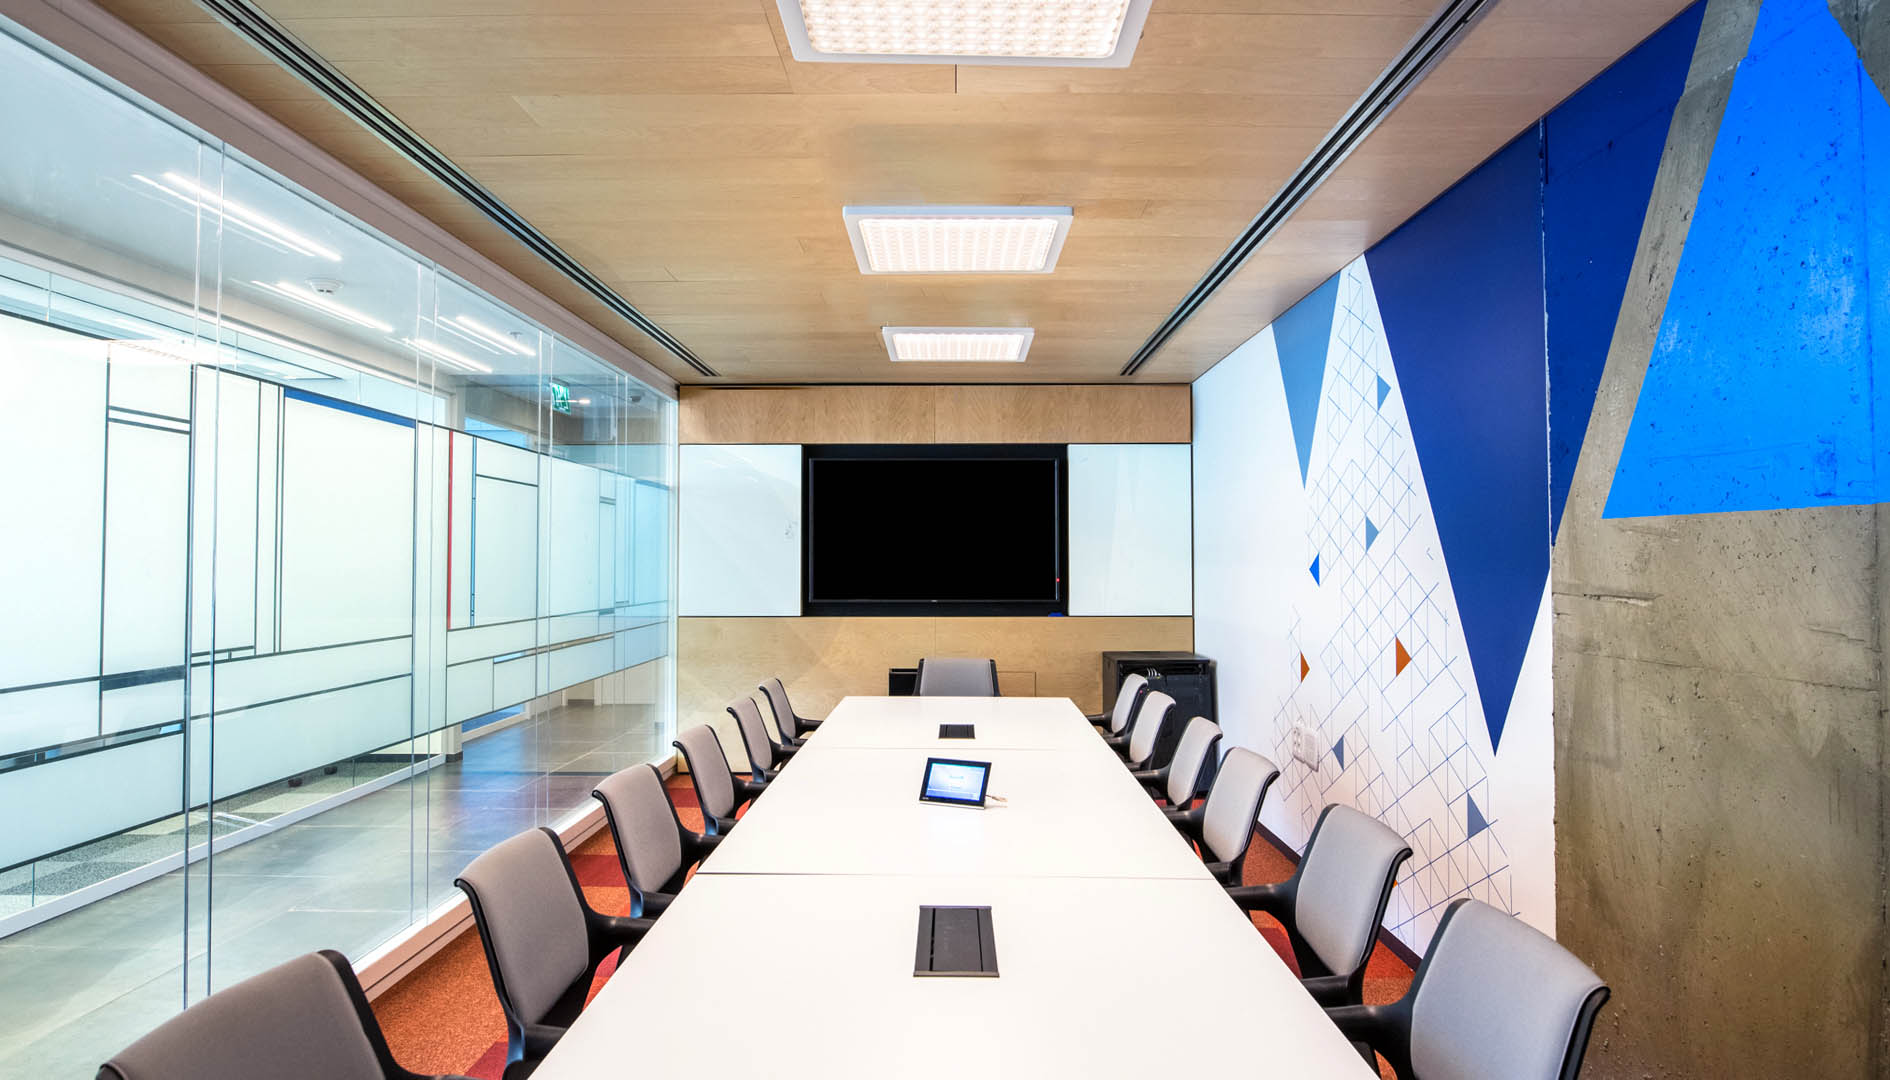 Ibm Landing Image Meeting Room 60